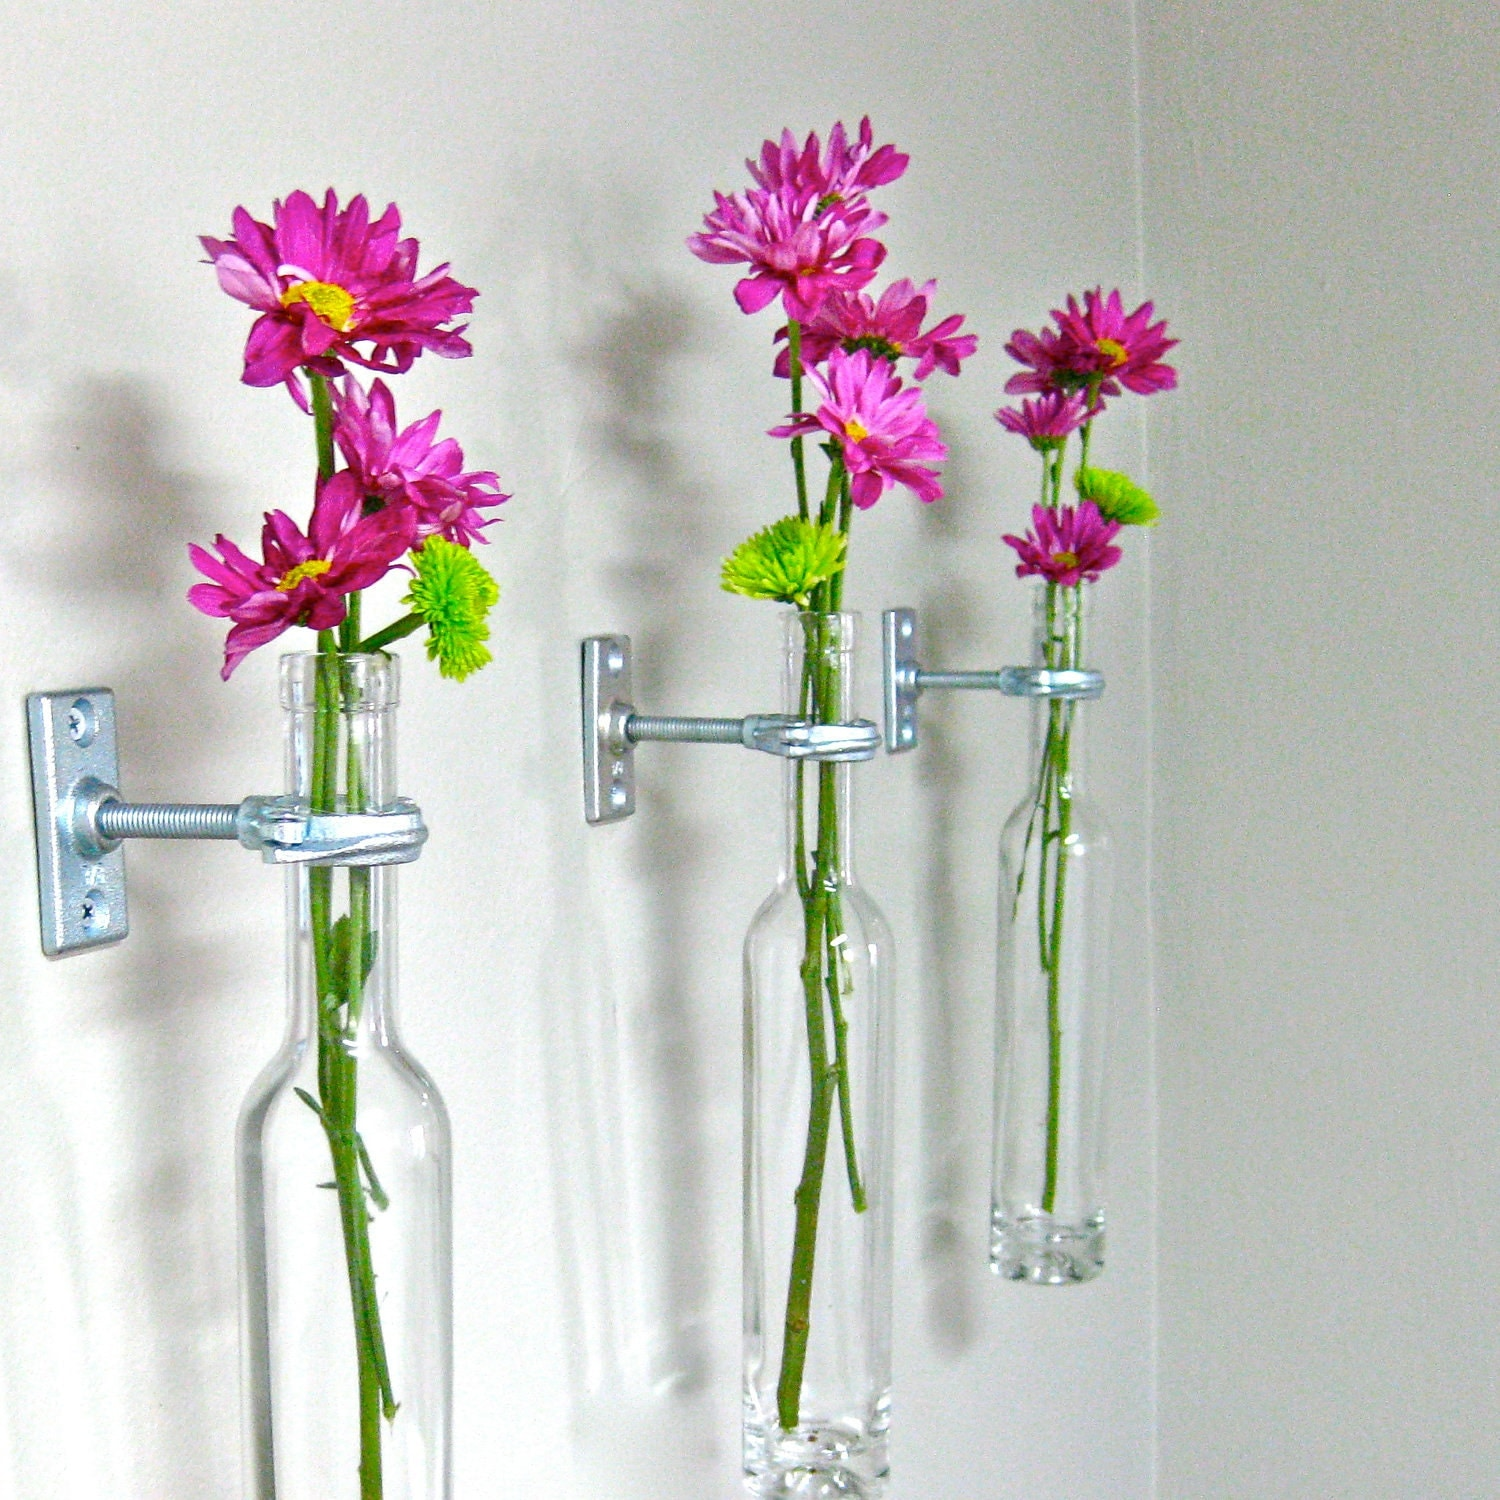 Wall vases for flowers - 10 Wine Bottle Wall Flower Vases Wall Vase Wall Decor Christmas Decor Wine Bottle Decor